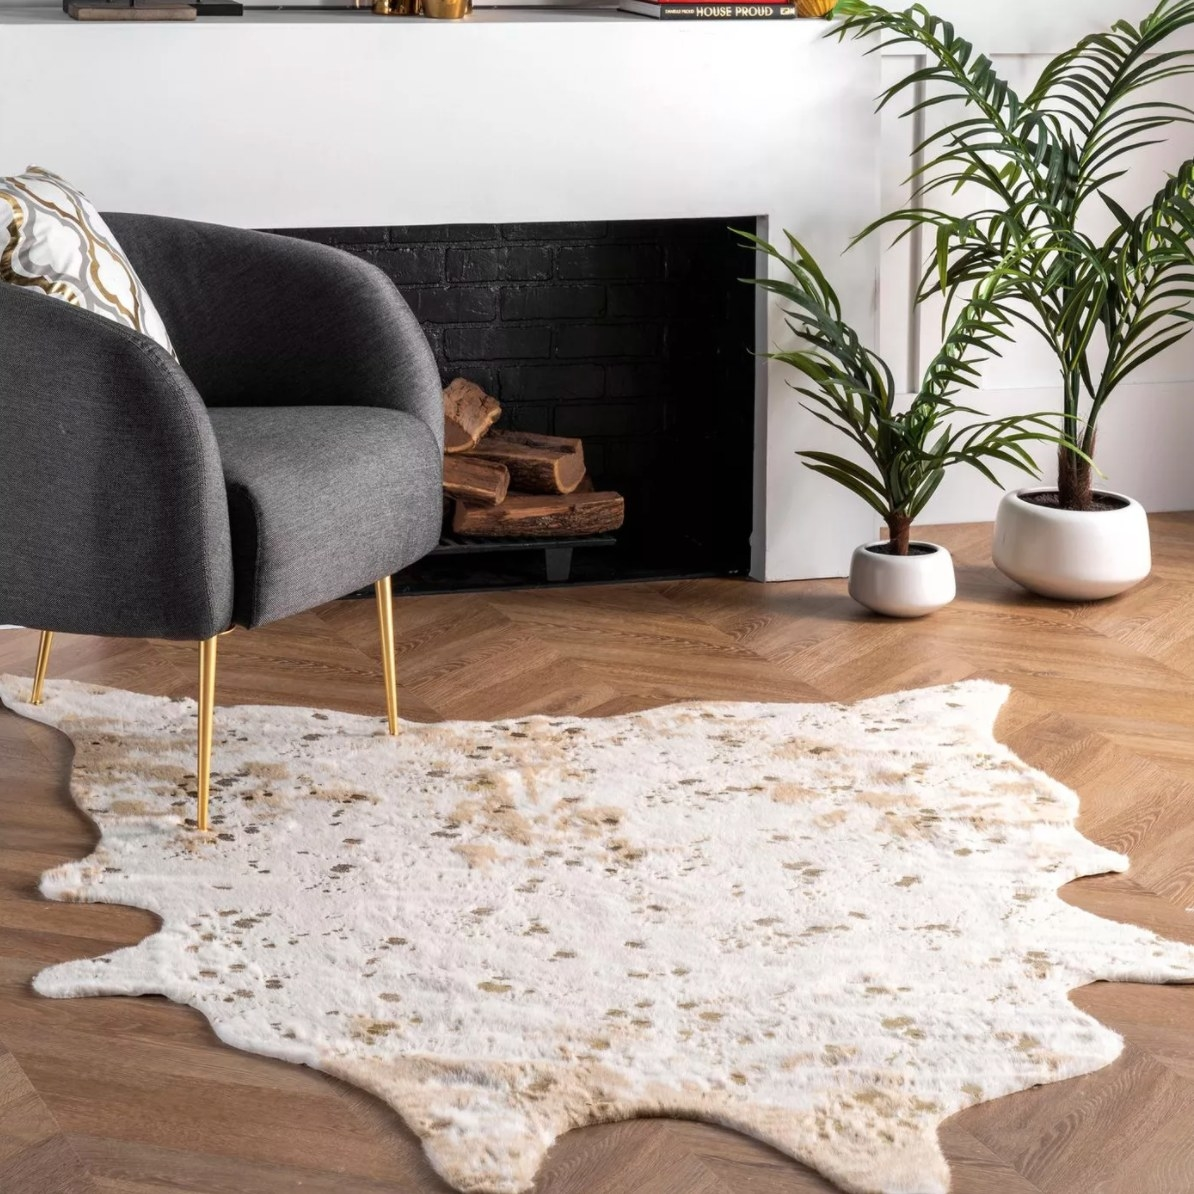 The faux cowhide area rug in offwhite